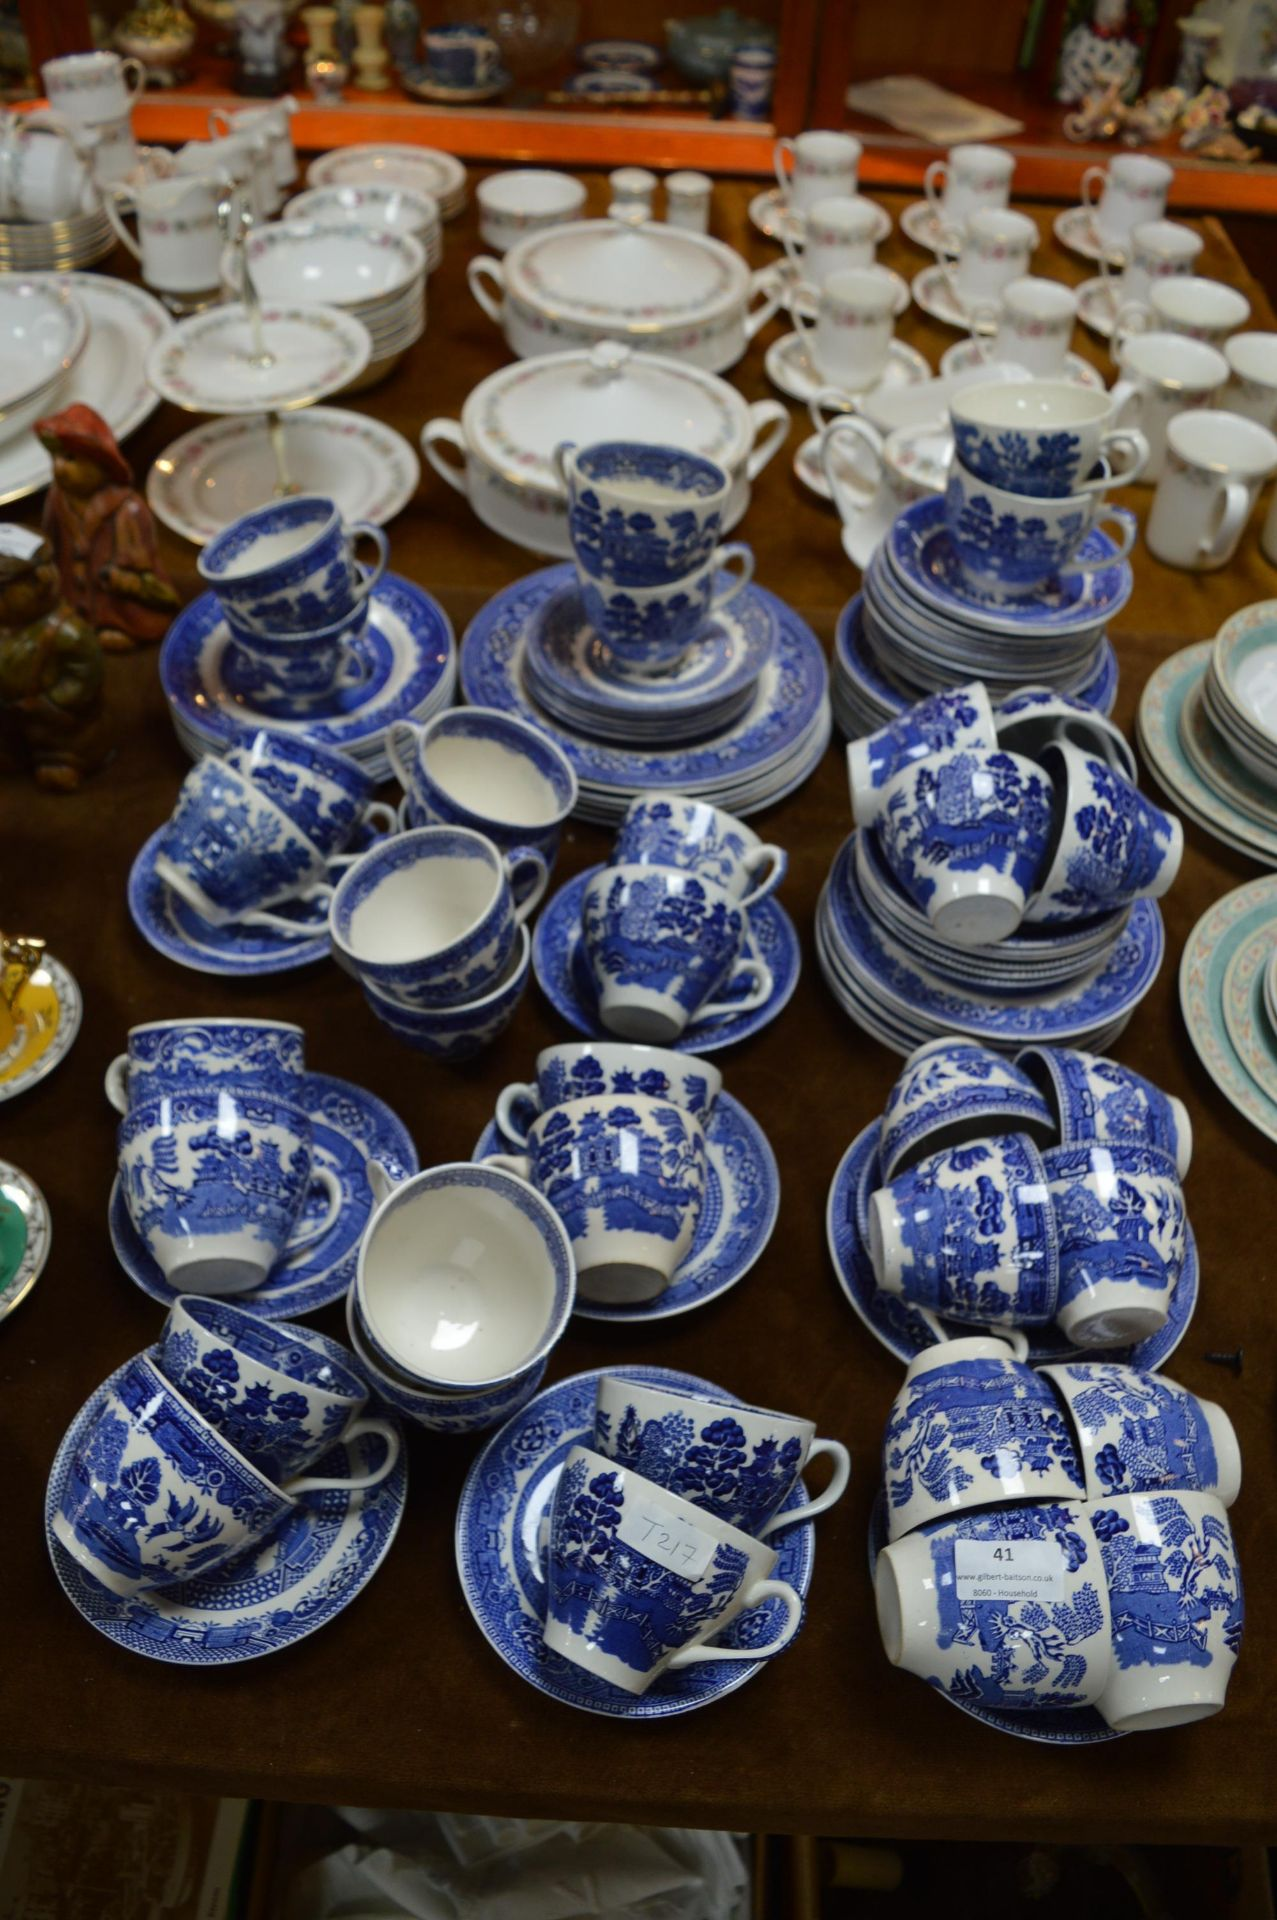 Lot 41 - 90+ Pieces of Blue & White China